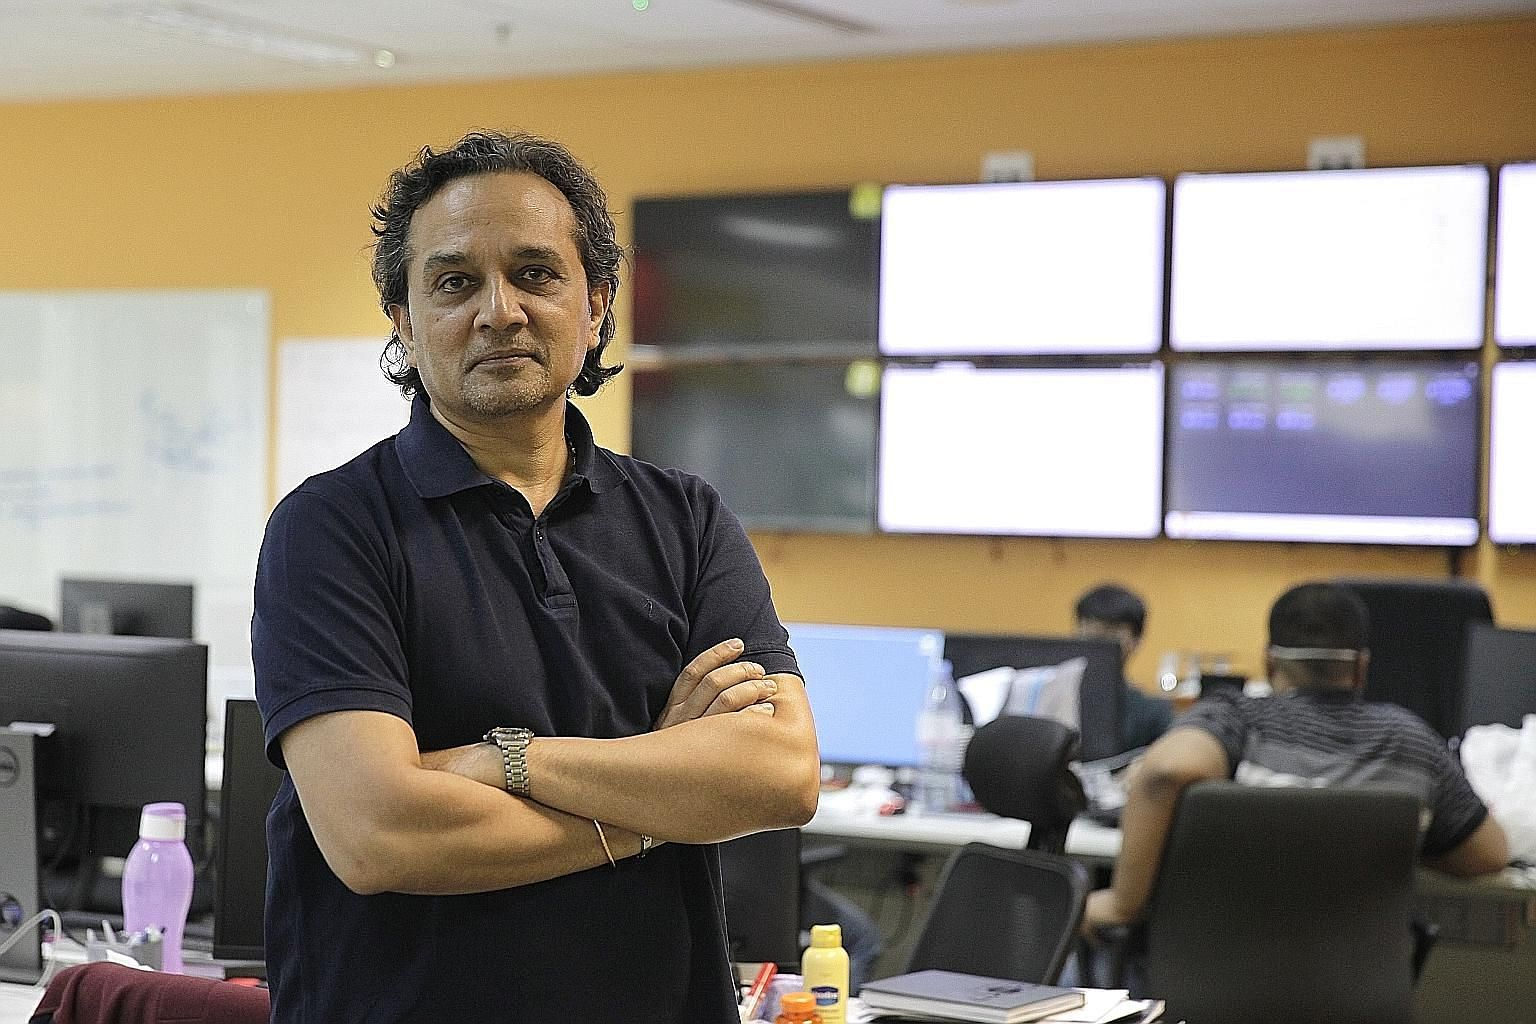 "MatchMove group chief executive Shailesh Naik said it will leverage its existing capabilities ""to address current pent-up demand and reach digitally under-served segments like small and medium-sized enterprises and gig workers, amongst others"". ST FI"